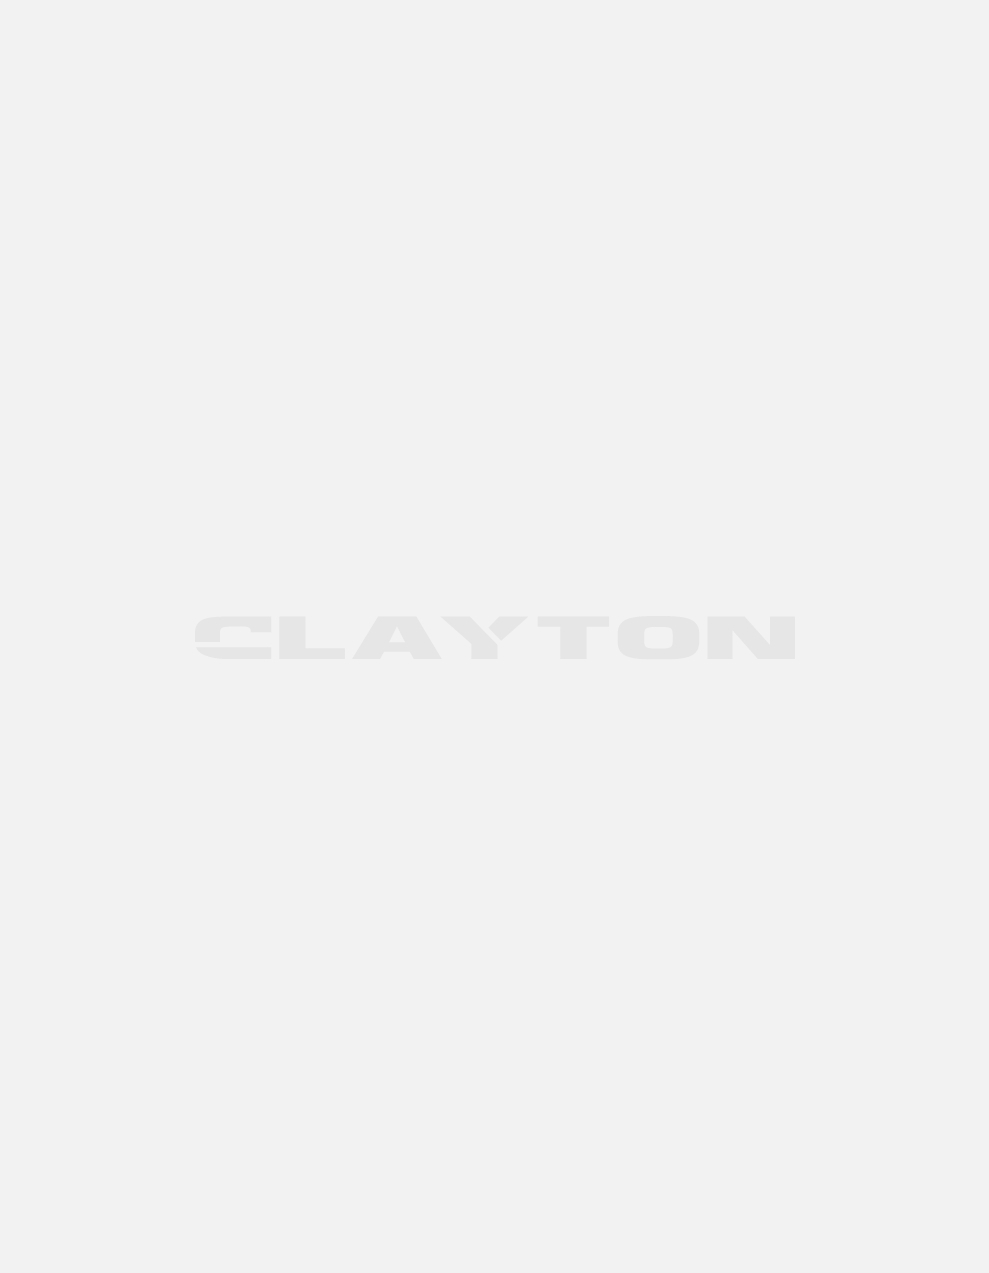 https://www.claytonitalia.com/media/catalog/product/cache/2/small_image/460x590/9df78eab33525d08d6e5fb8d27136e95/g/i/gift55_nt.jpg